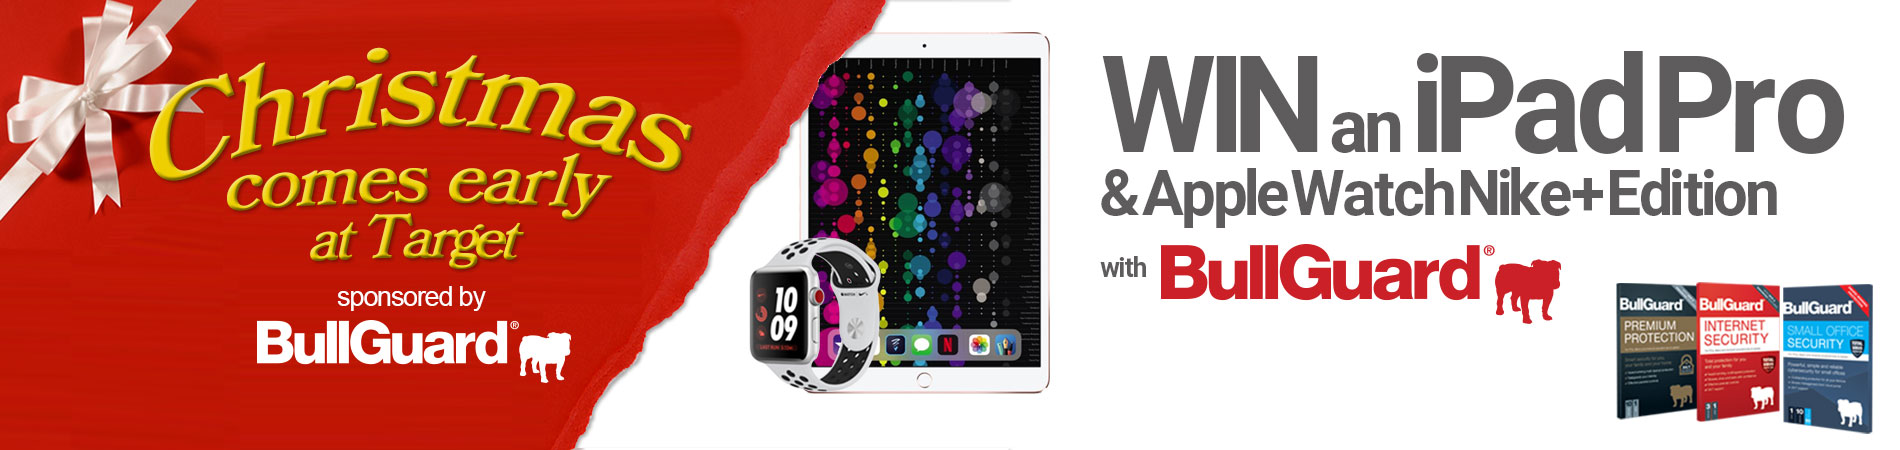 Win an iPad Pro and Apple Watch with BullGuard Internet Security at Target